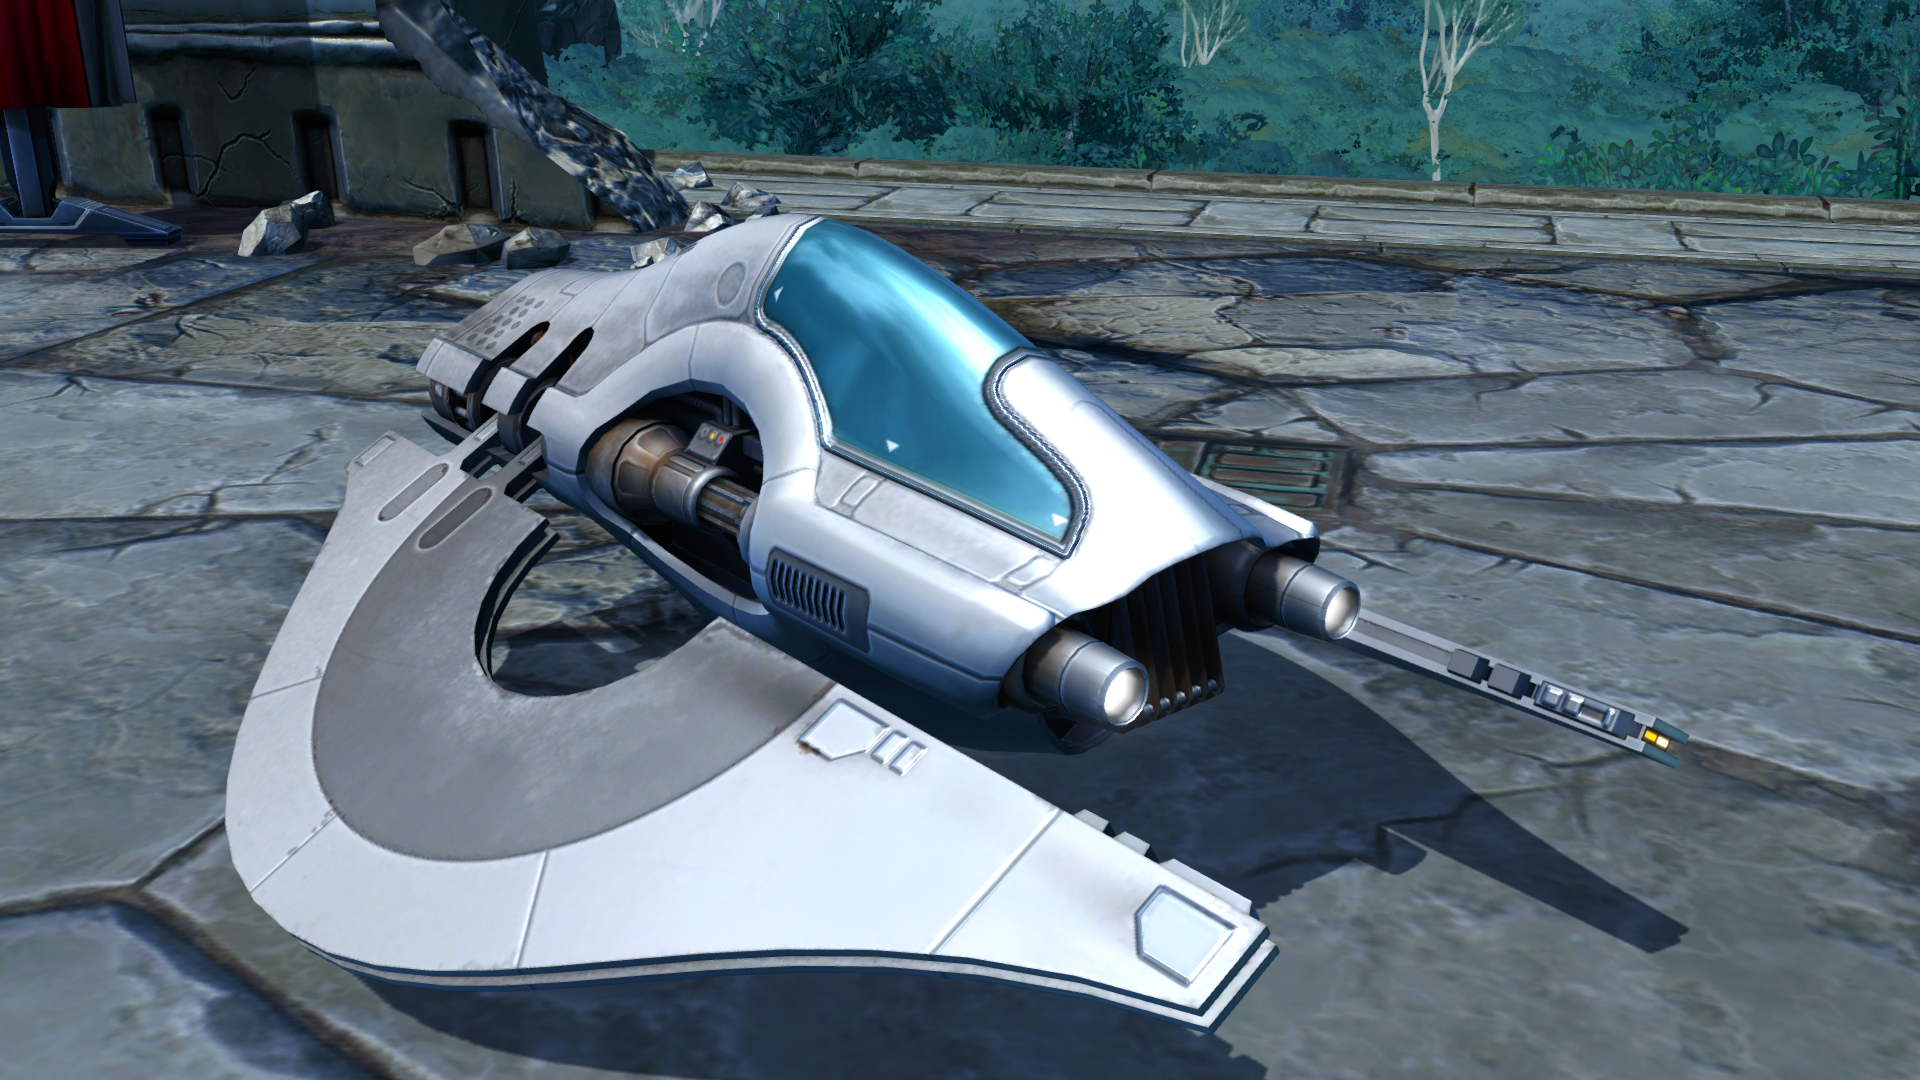 SWTOR Chiss Speeder